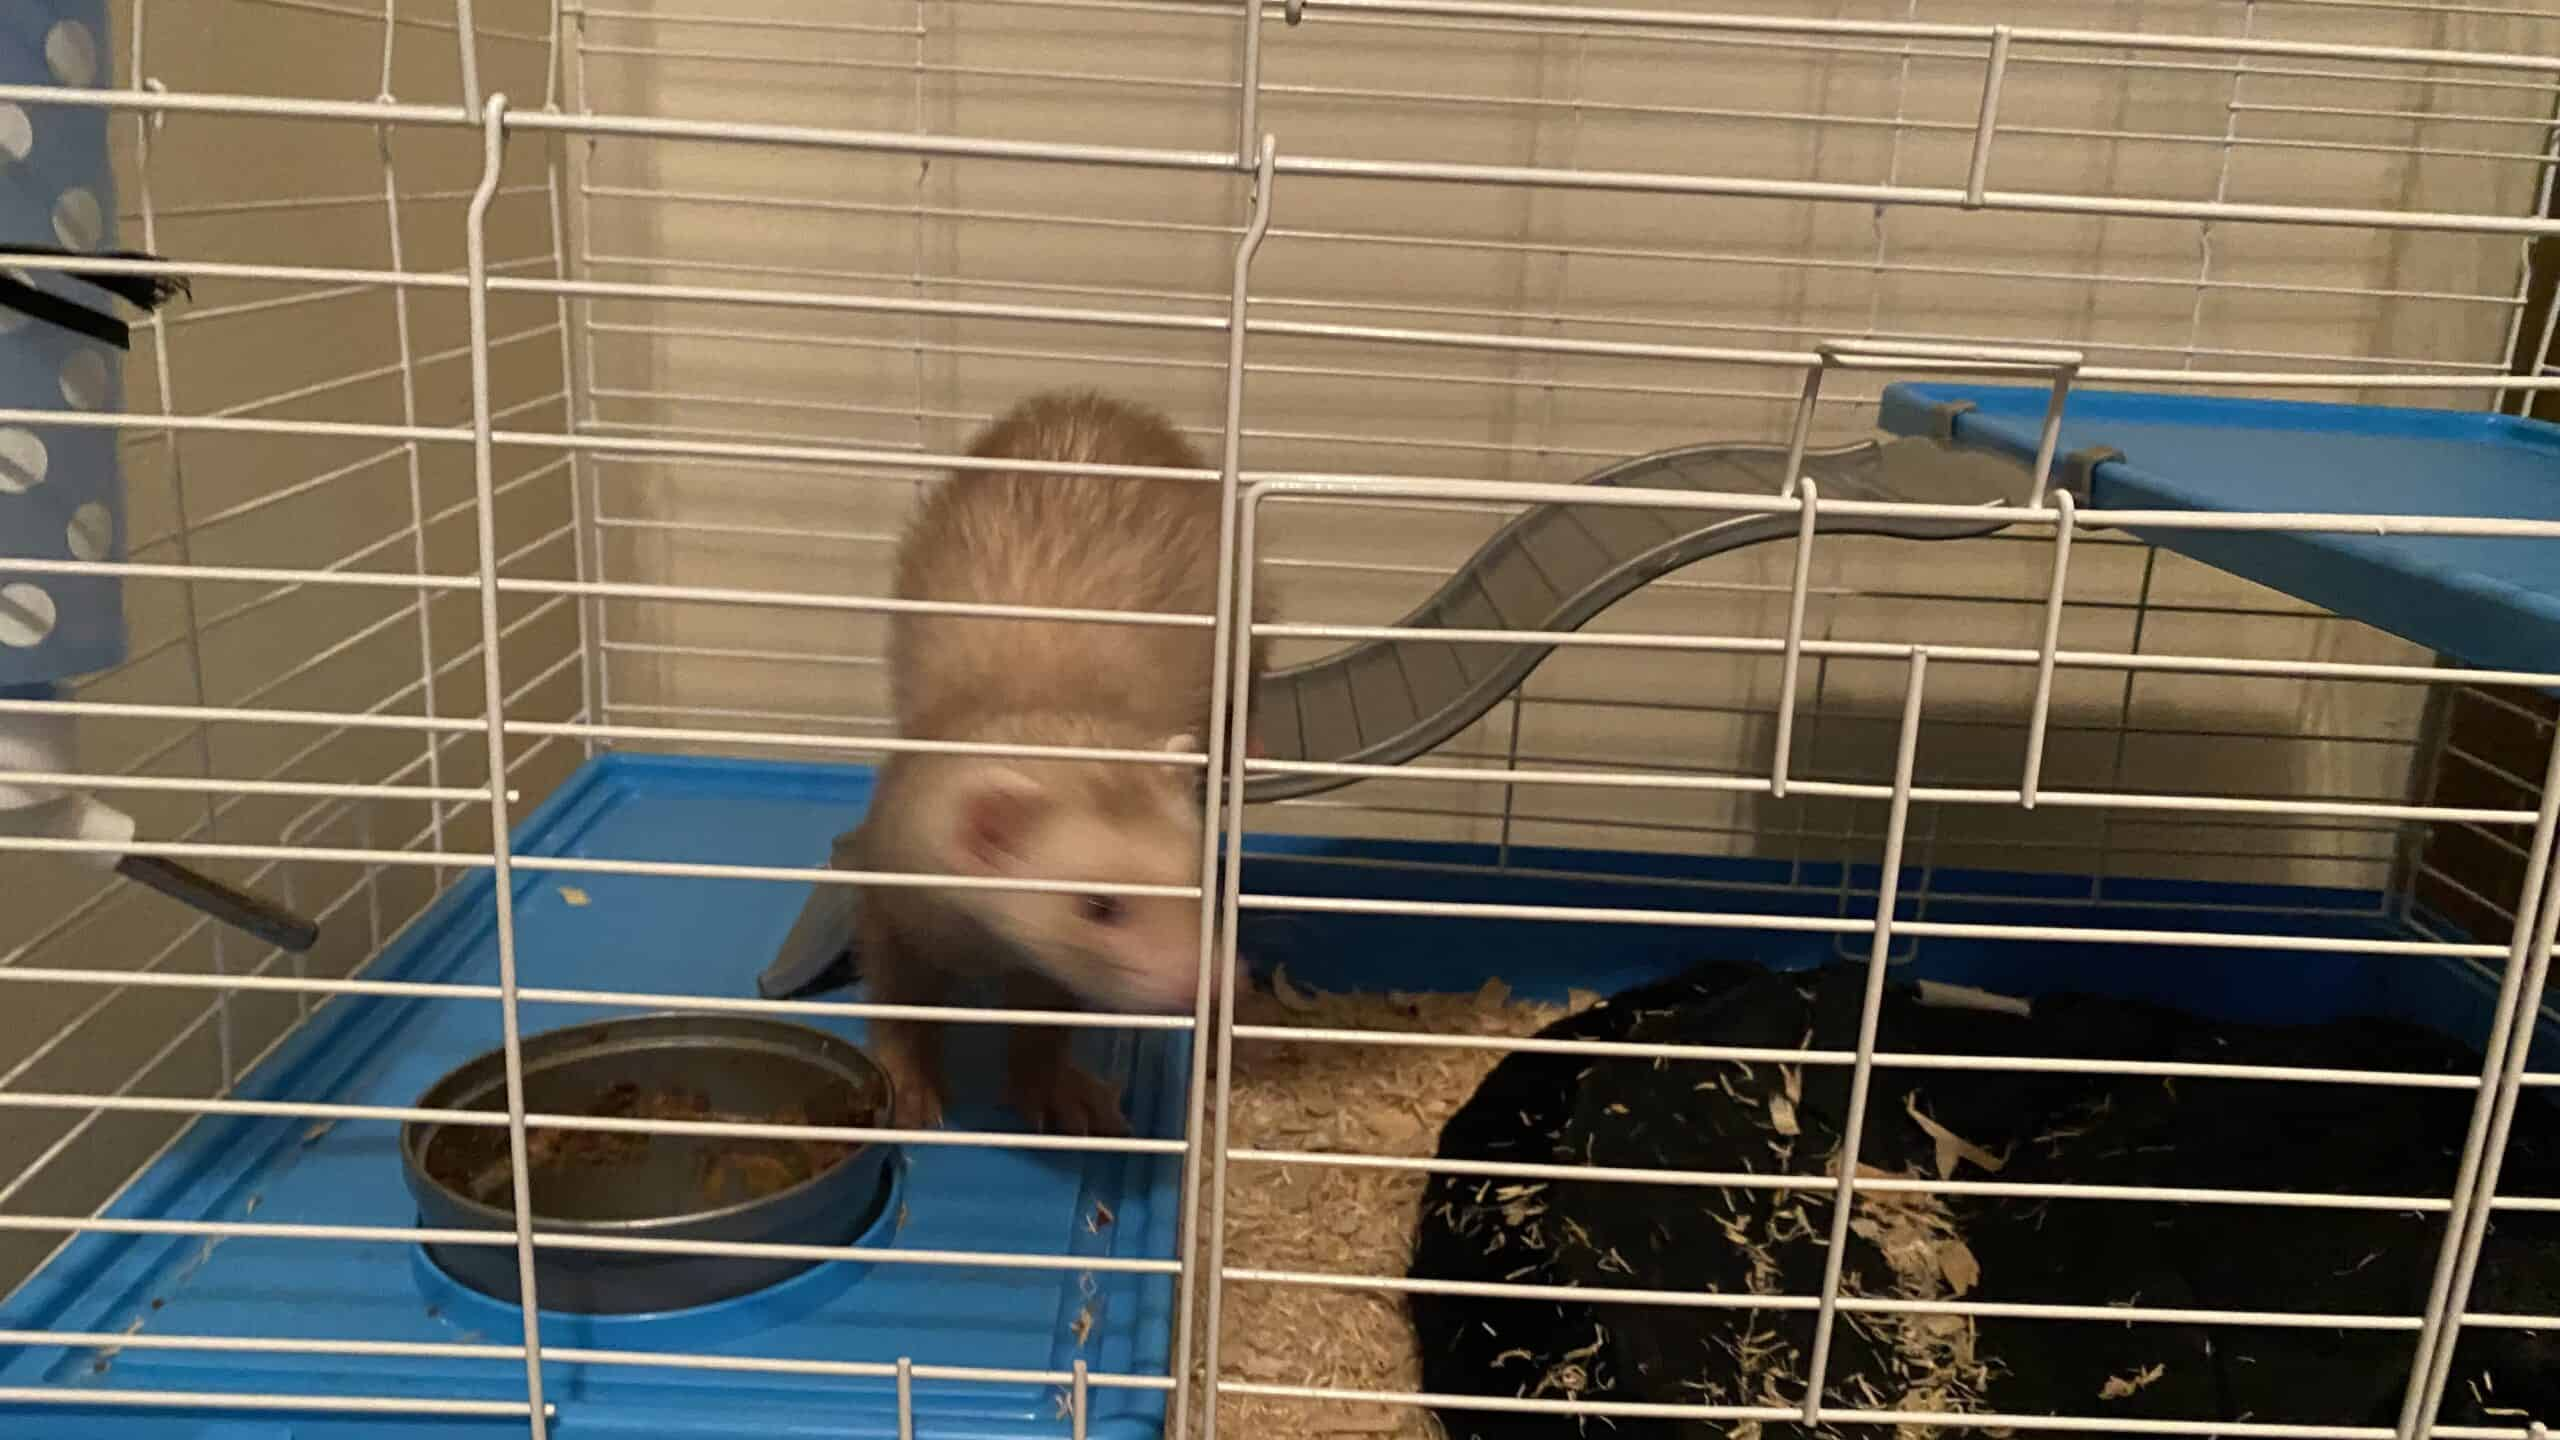 Ferret for sale & cage